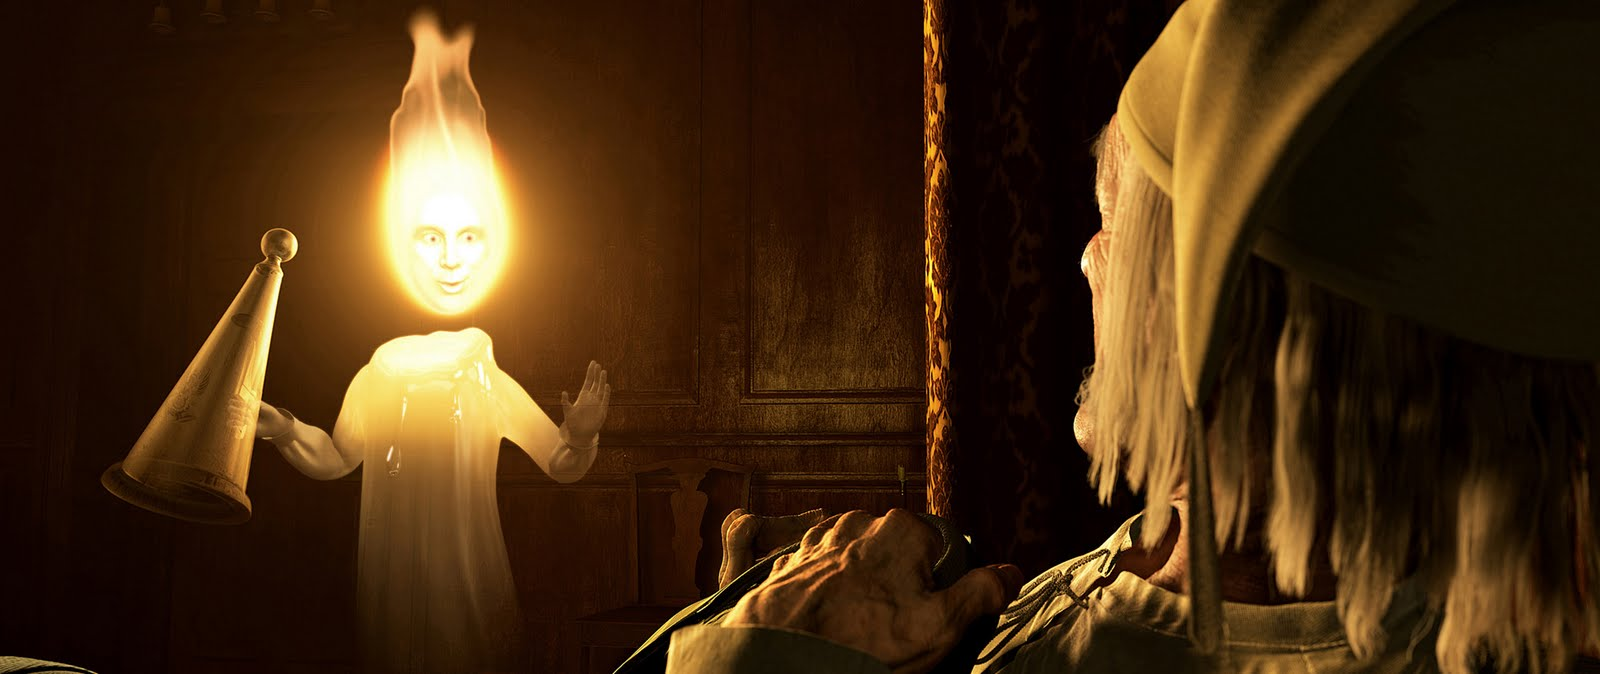 an analysis of the main characters in the film a christmas carol Ghost of christmas past: the first of the spirits foretold by marley who shows scrooge his past christmases ghost of christmas present: the second of the spirits foretold by marley that shows scrooge christmas celebrations in the present time.